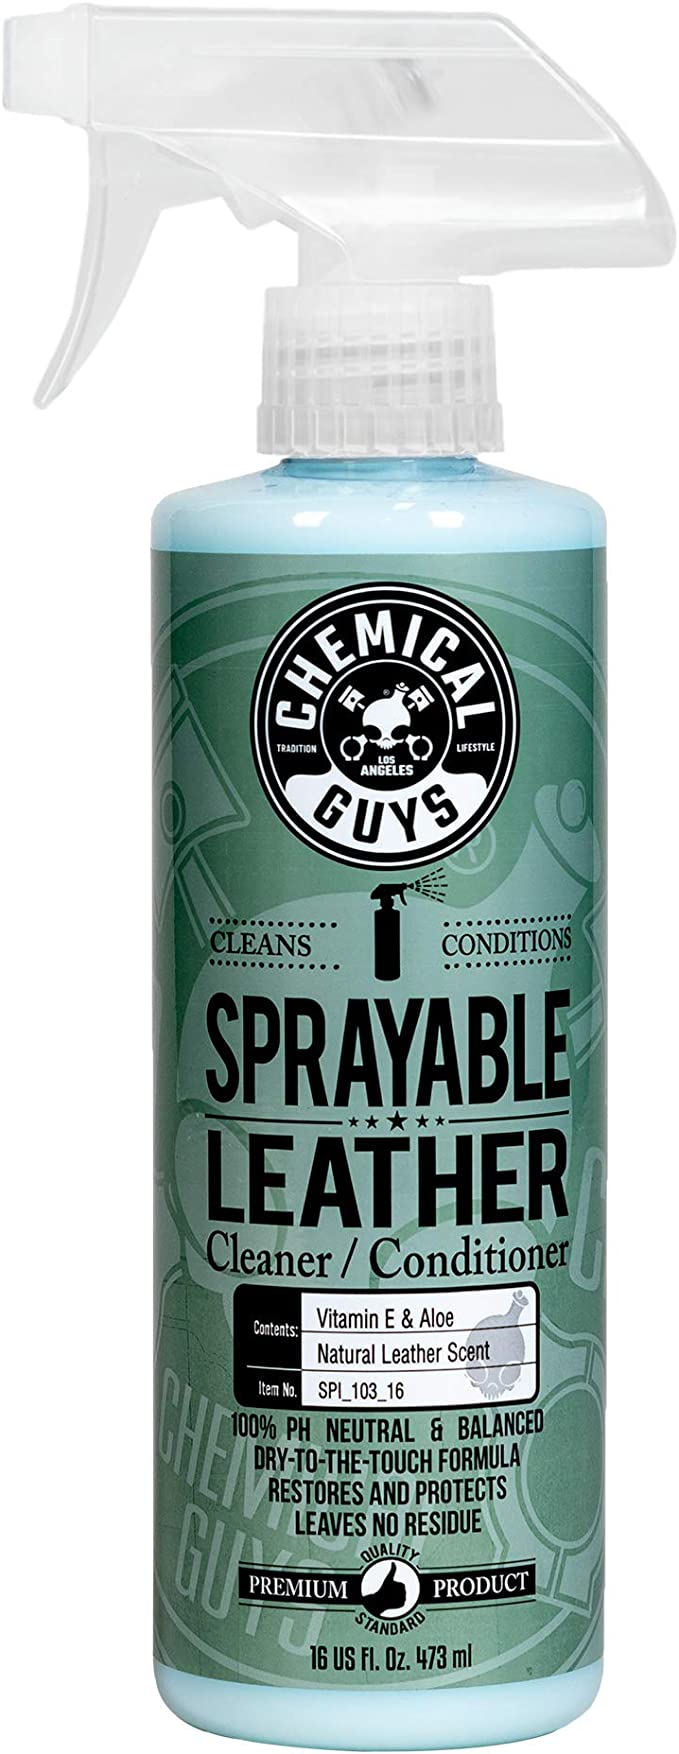 Amazon.com: Chemical Guys SPI_103_16 Sprayable Leather Cleaner and Conditioner in One, 16 oz: Automotive